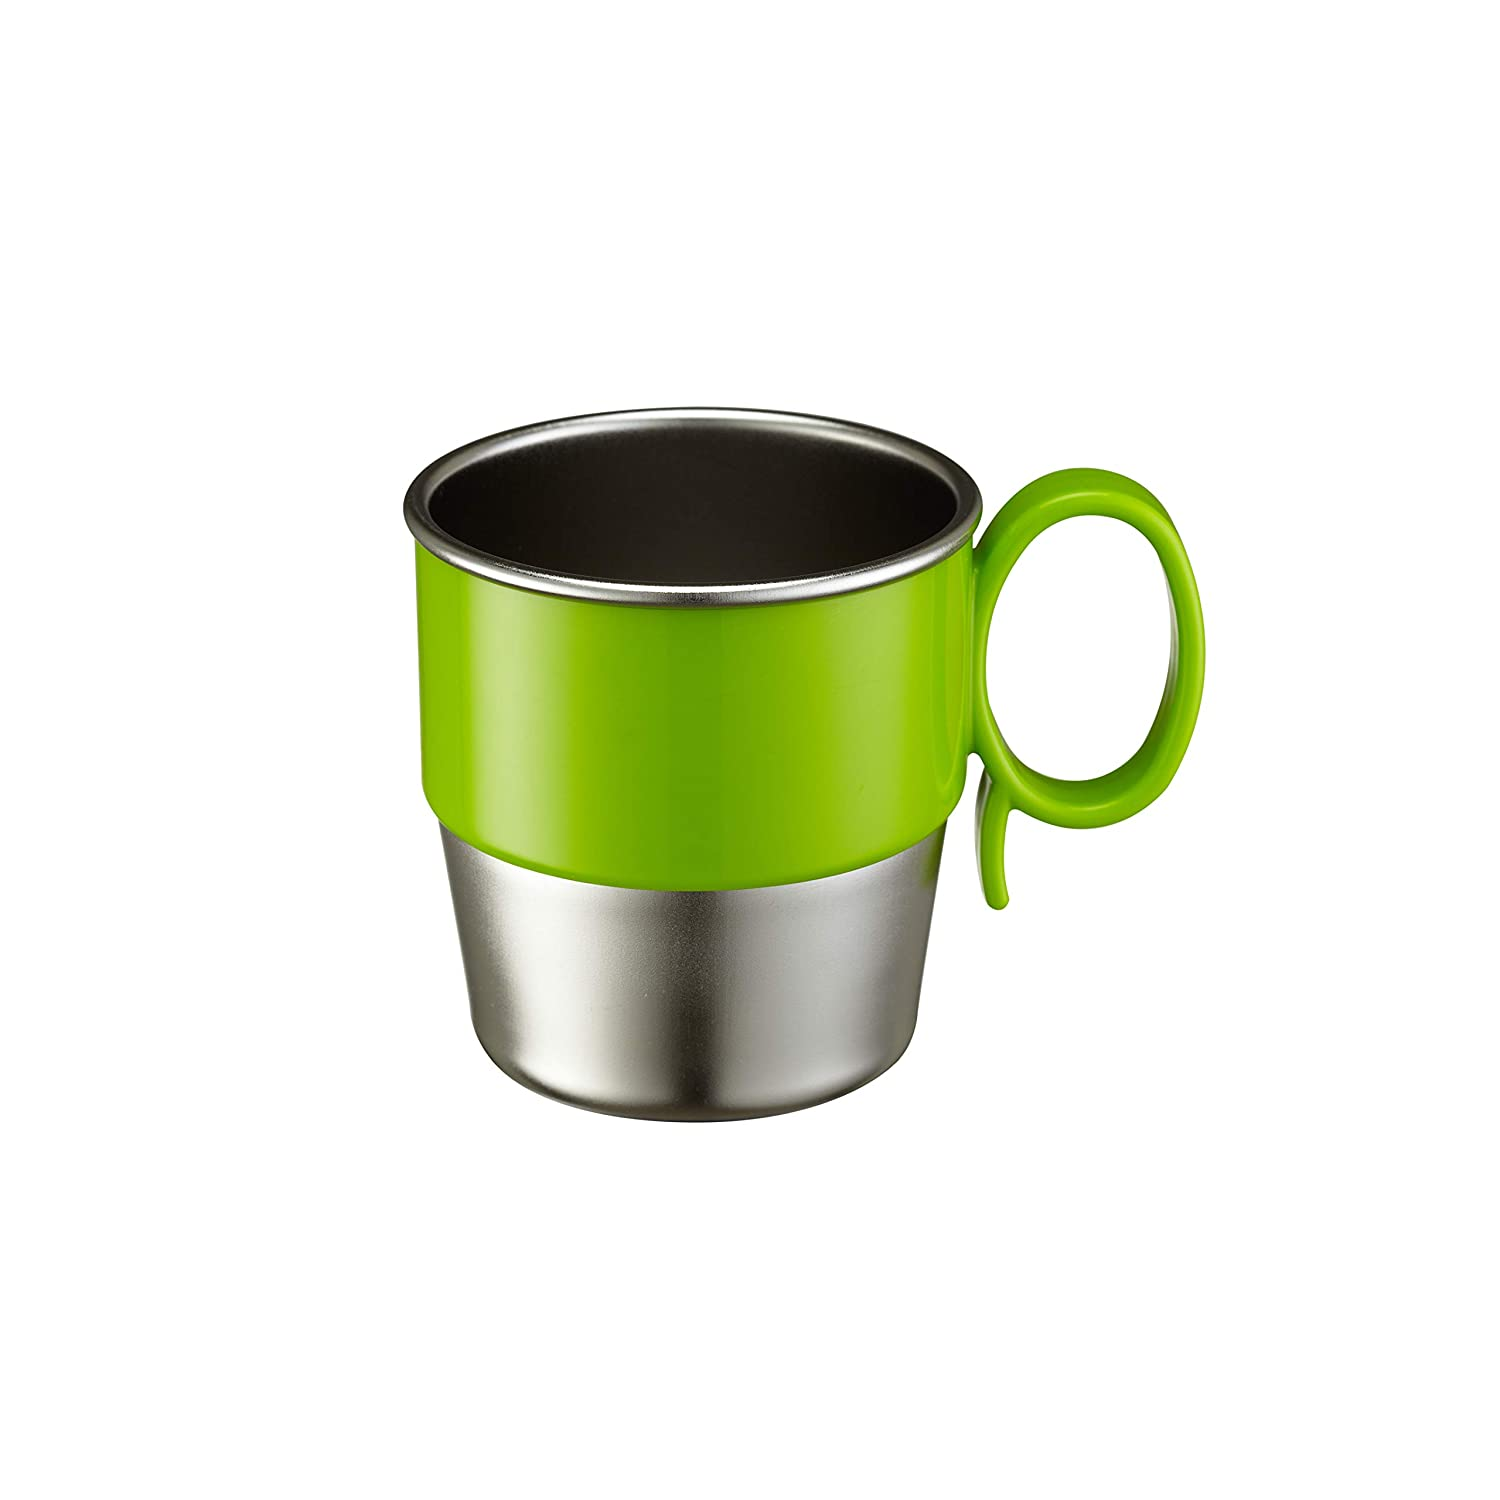 Innobaby Din Din Smart Stainless Steel Cup (9 oz) with Handle for Babies, Toddlers and Kids. BPA Free, Green